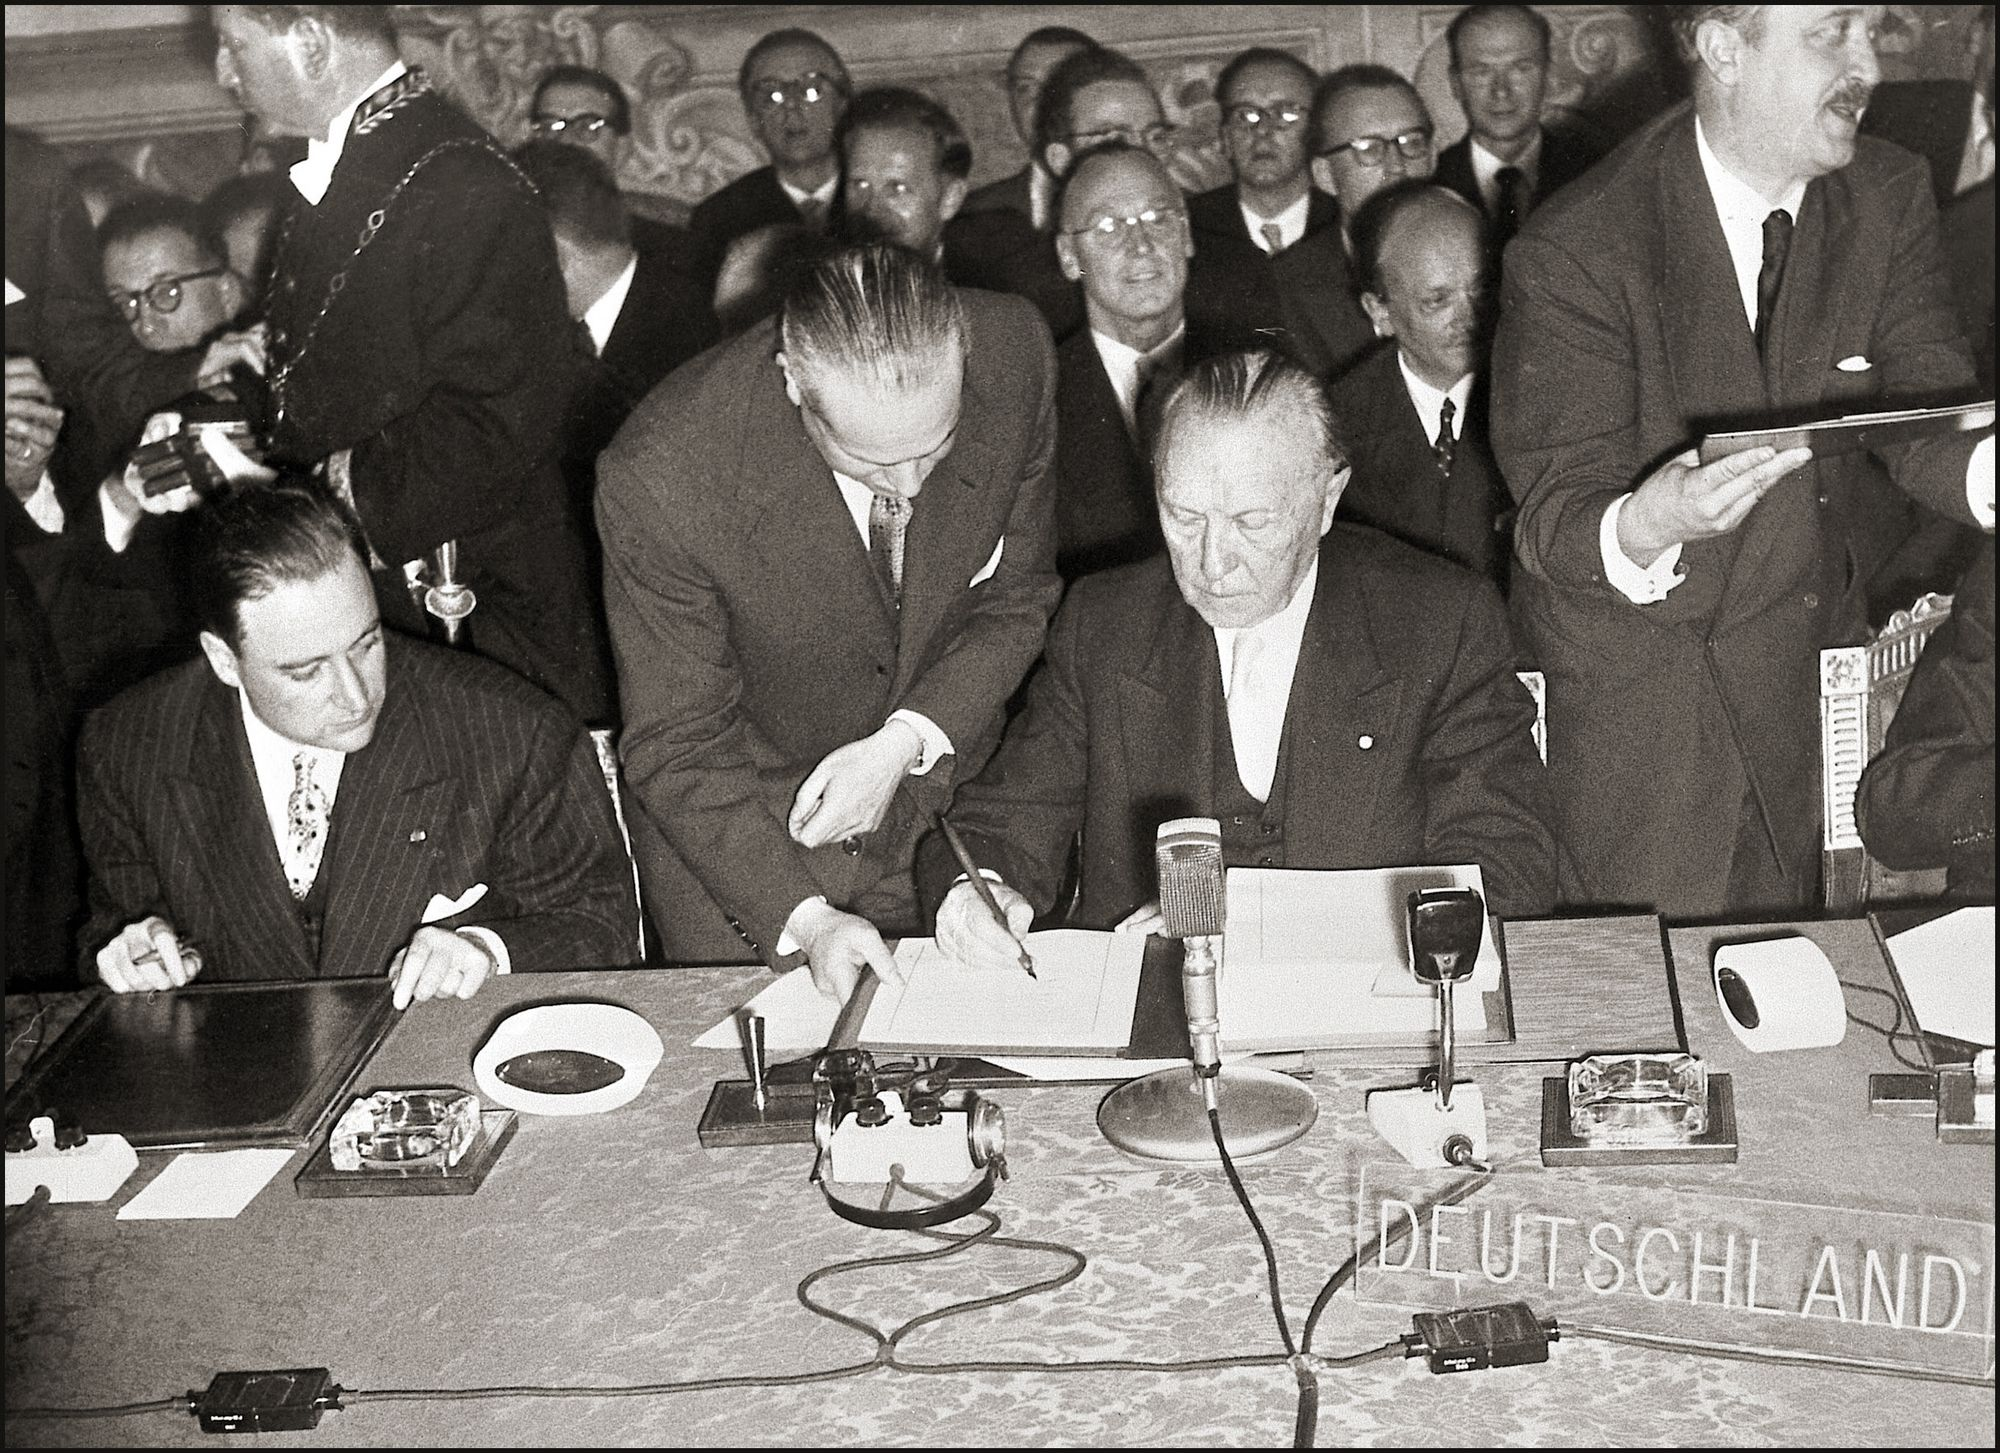 Sur la photo, le chancelier allemand Adenauer signe le Traité de Rome.